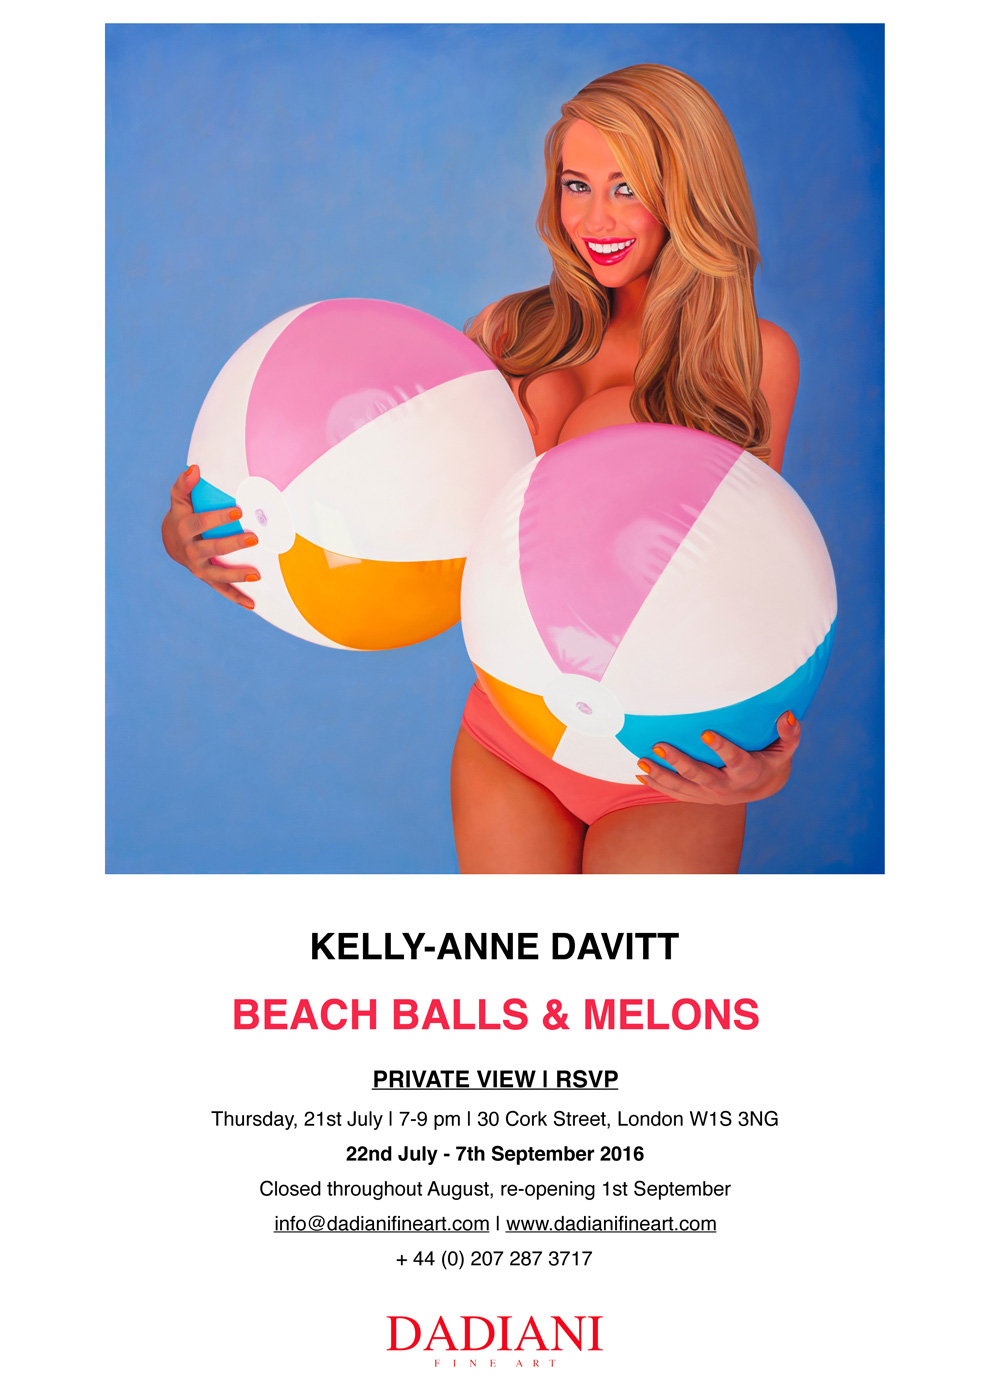 Kelly-Anne Davitt Beach Balls & Melons